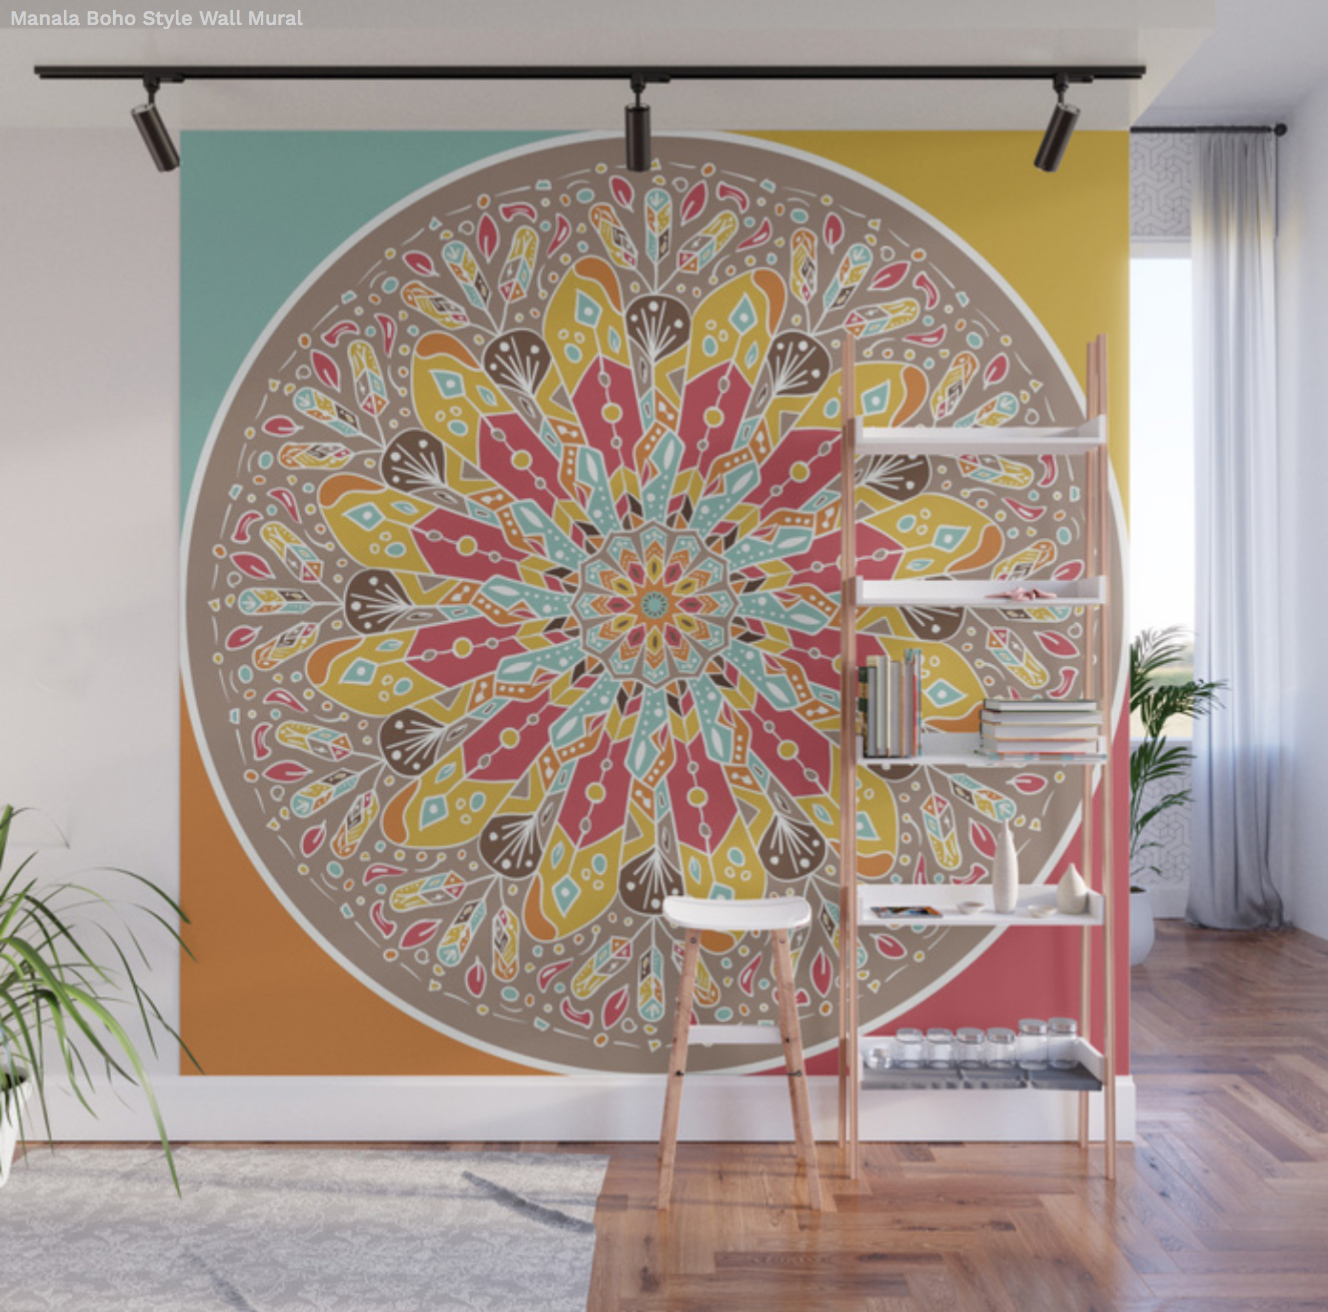 Wall mural Manala Boho Style by Angel Decuir | Society6